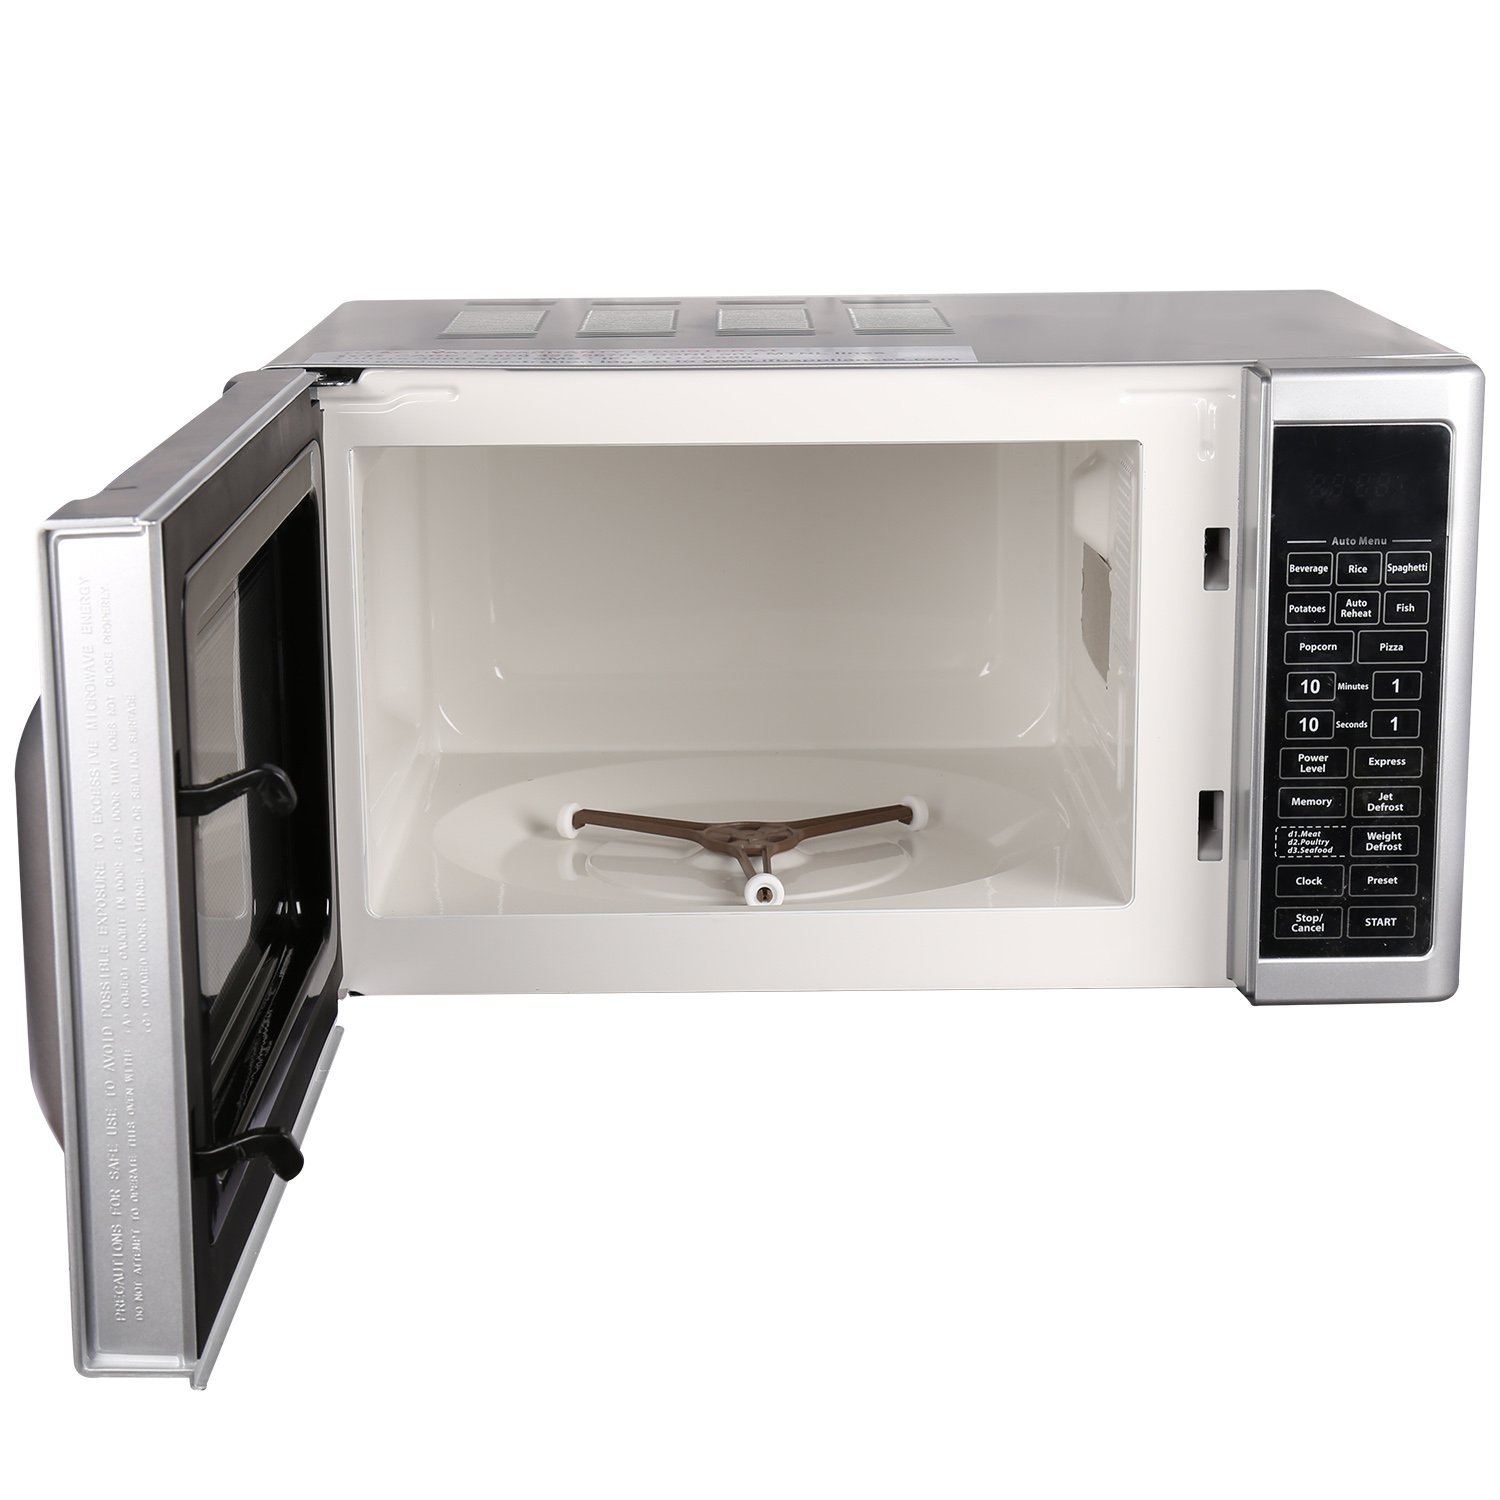 IFB Metalic Silver Microwave Oven